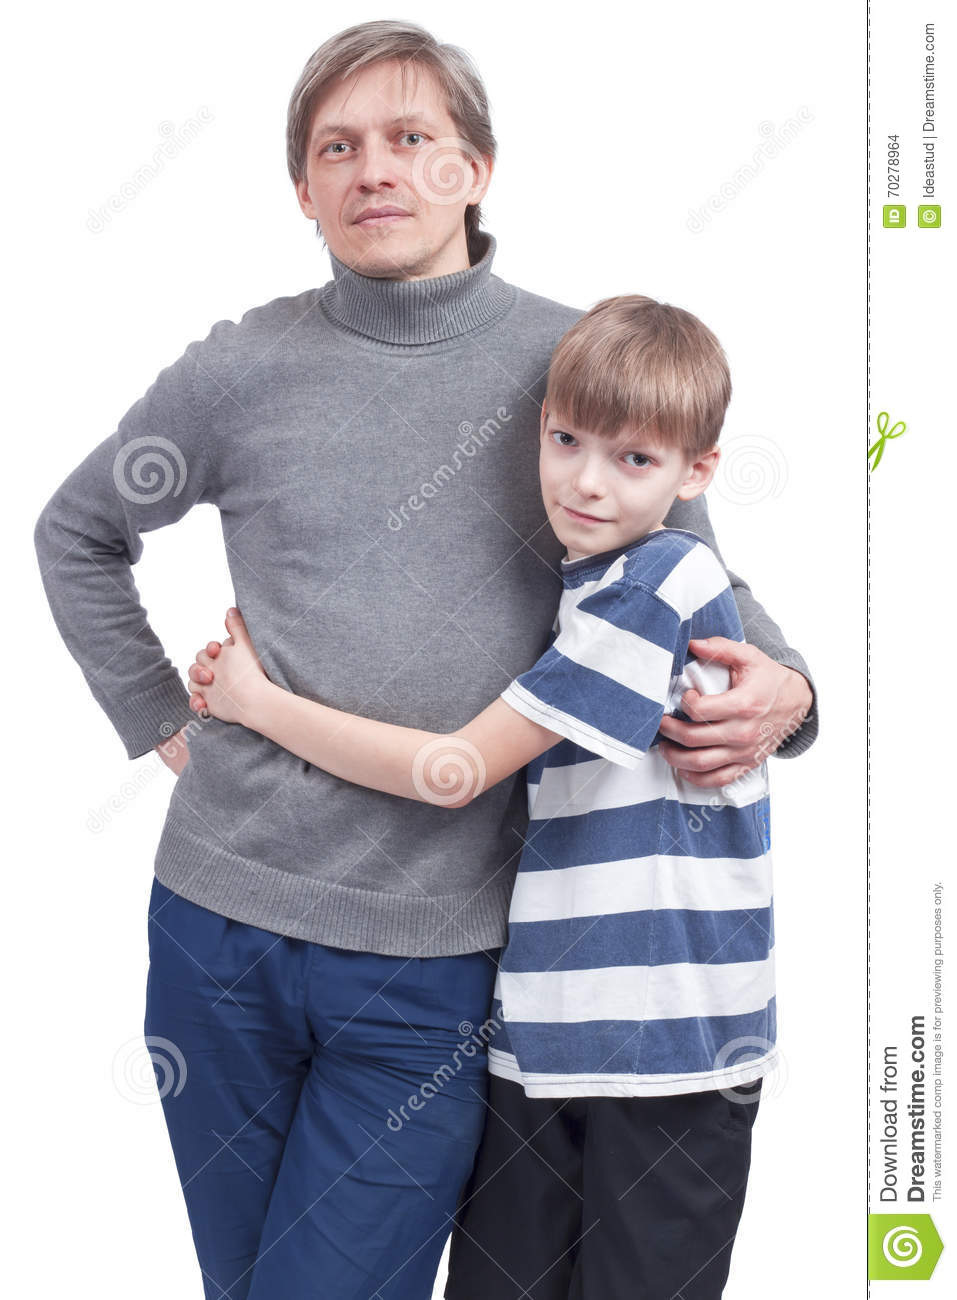 a3f8b5481 Father And Son Standing Together Stock Photo - Image of together ...